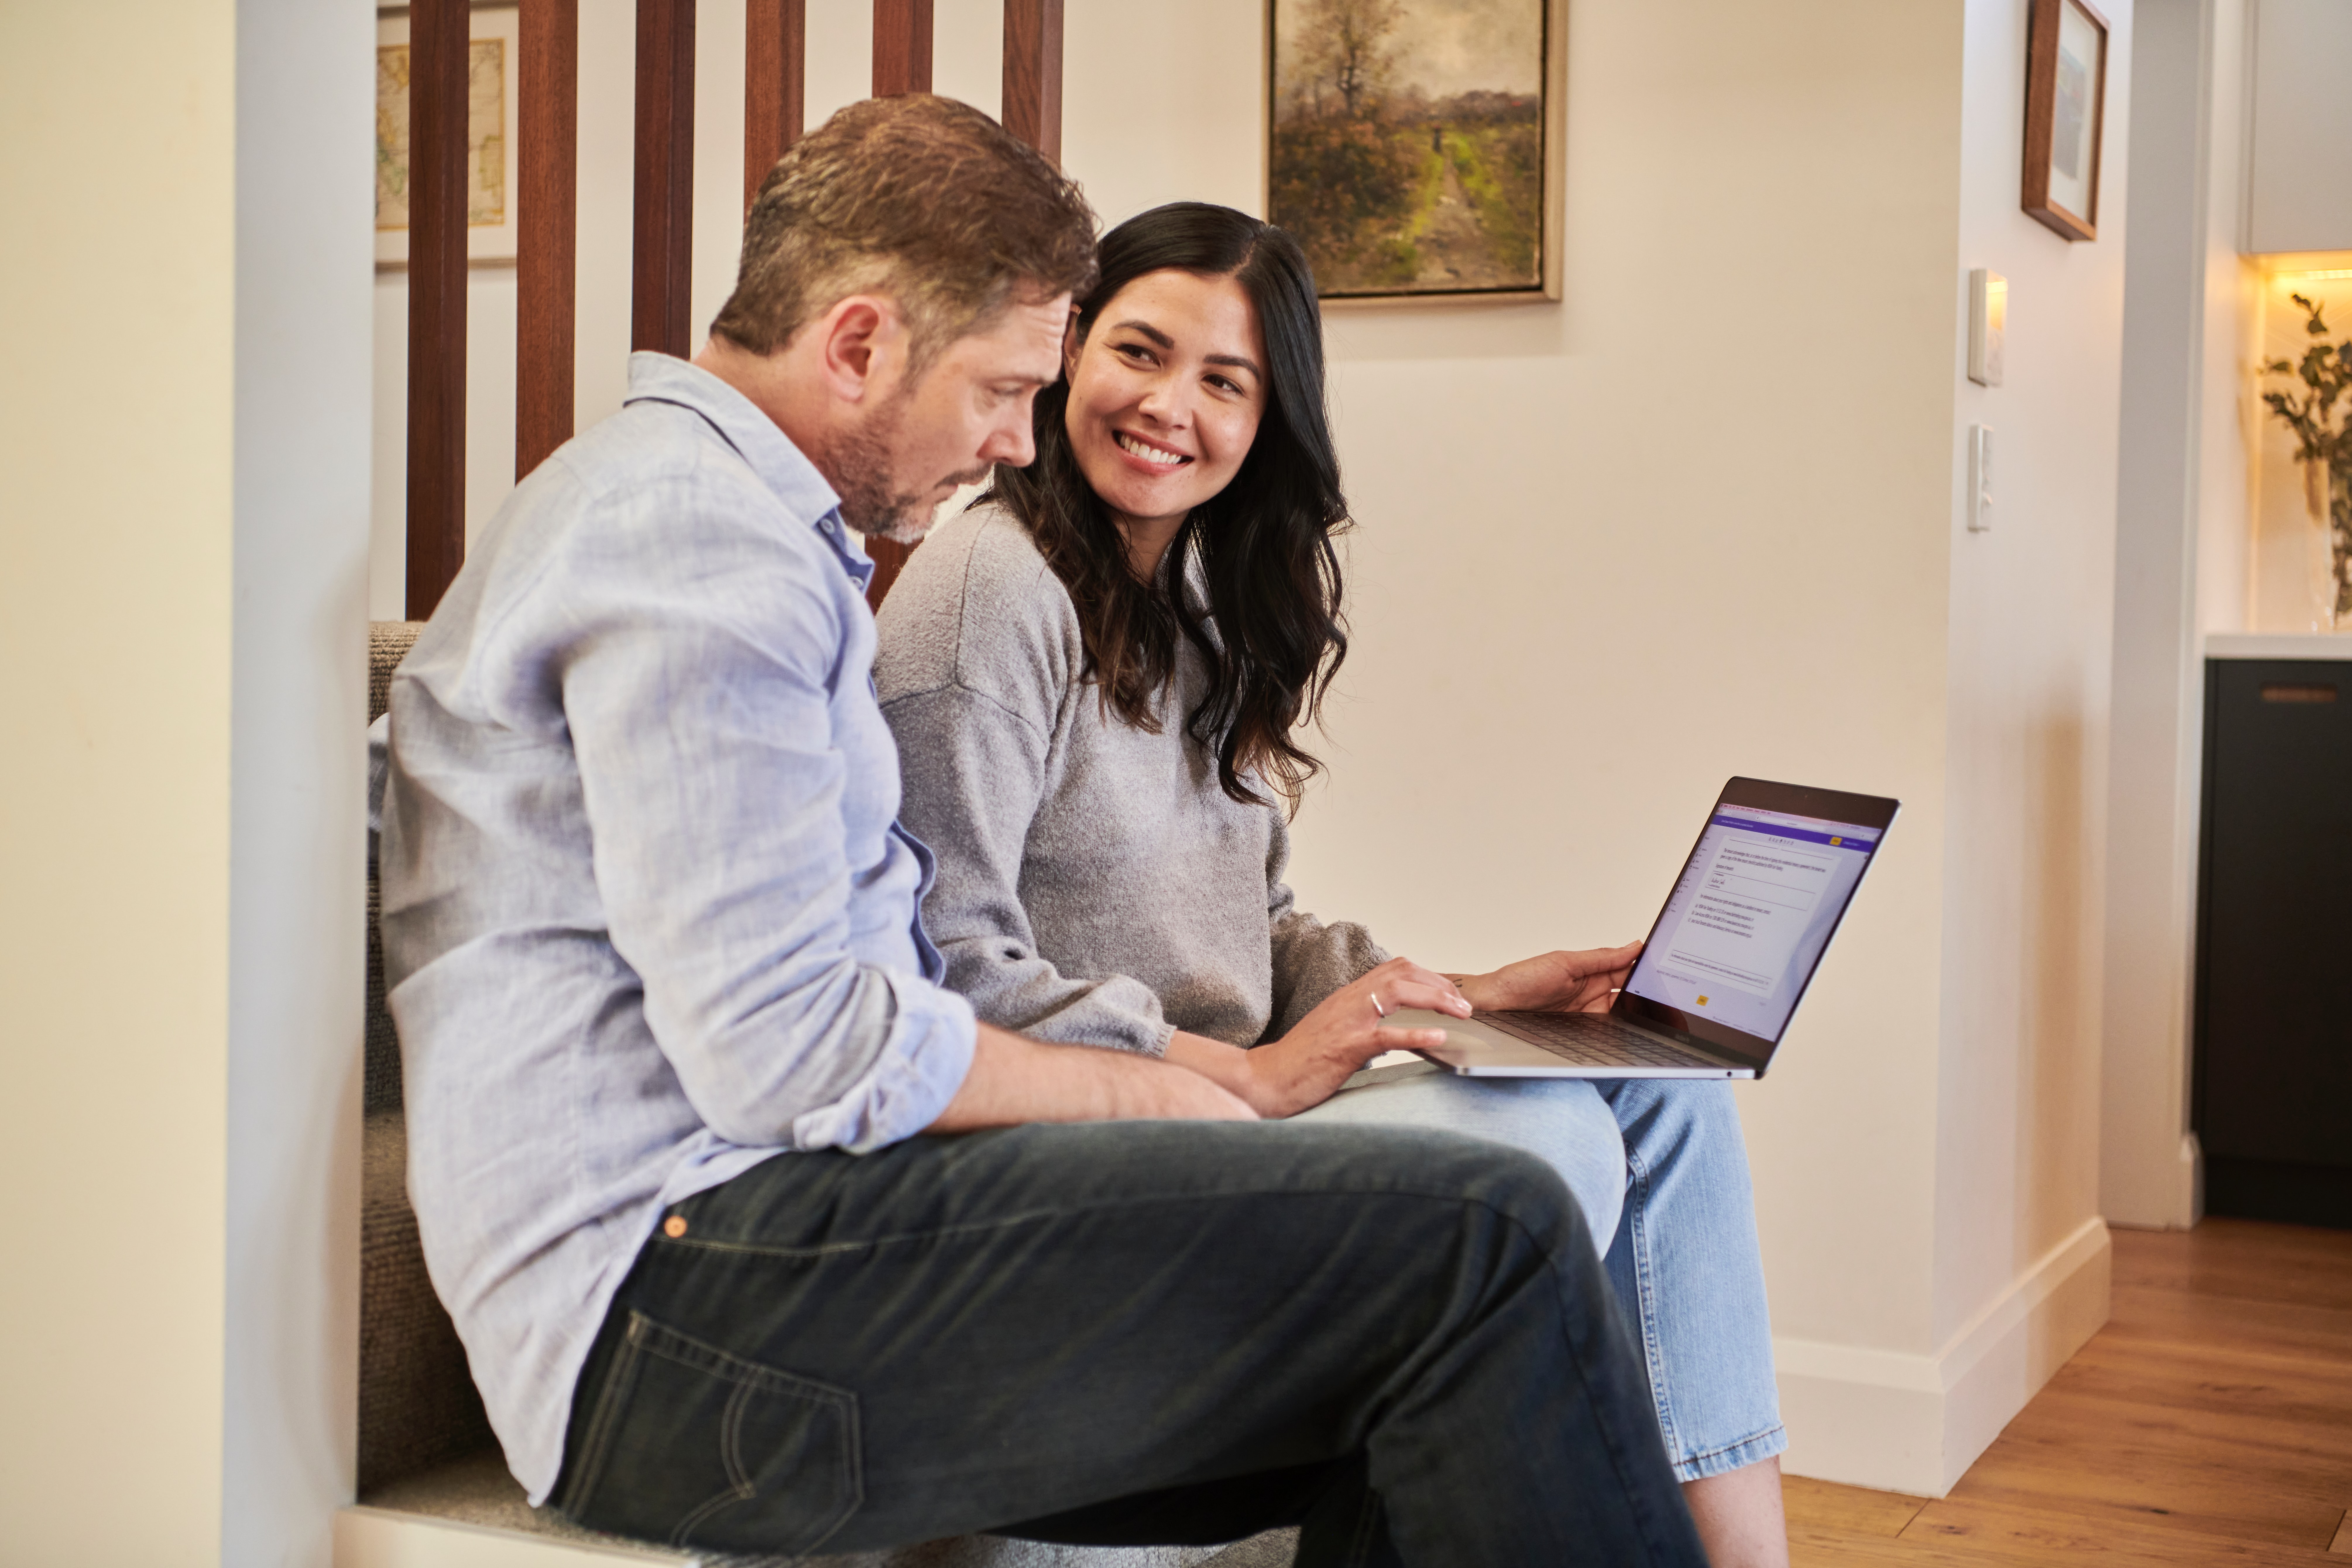 A woman sitting in the stairs next to a man showing him something on a laptop